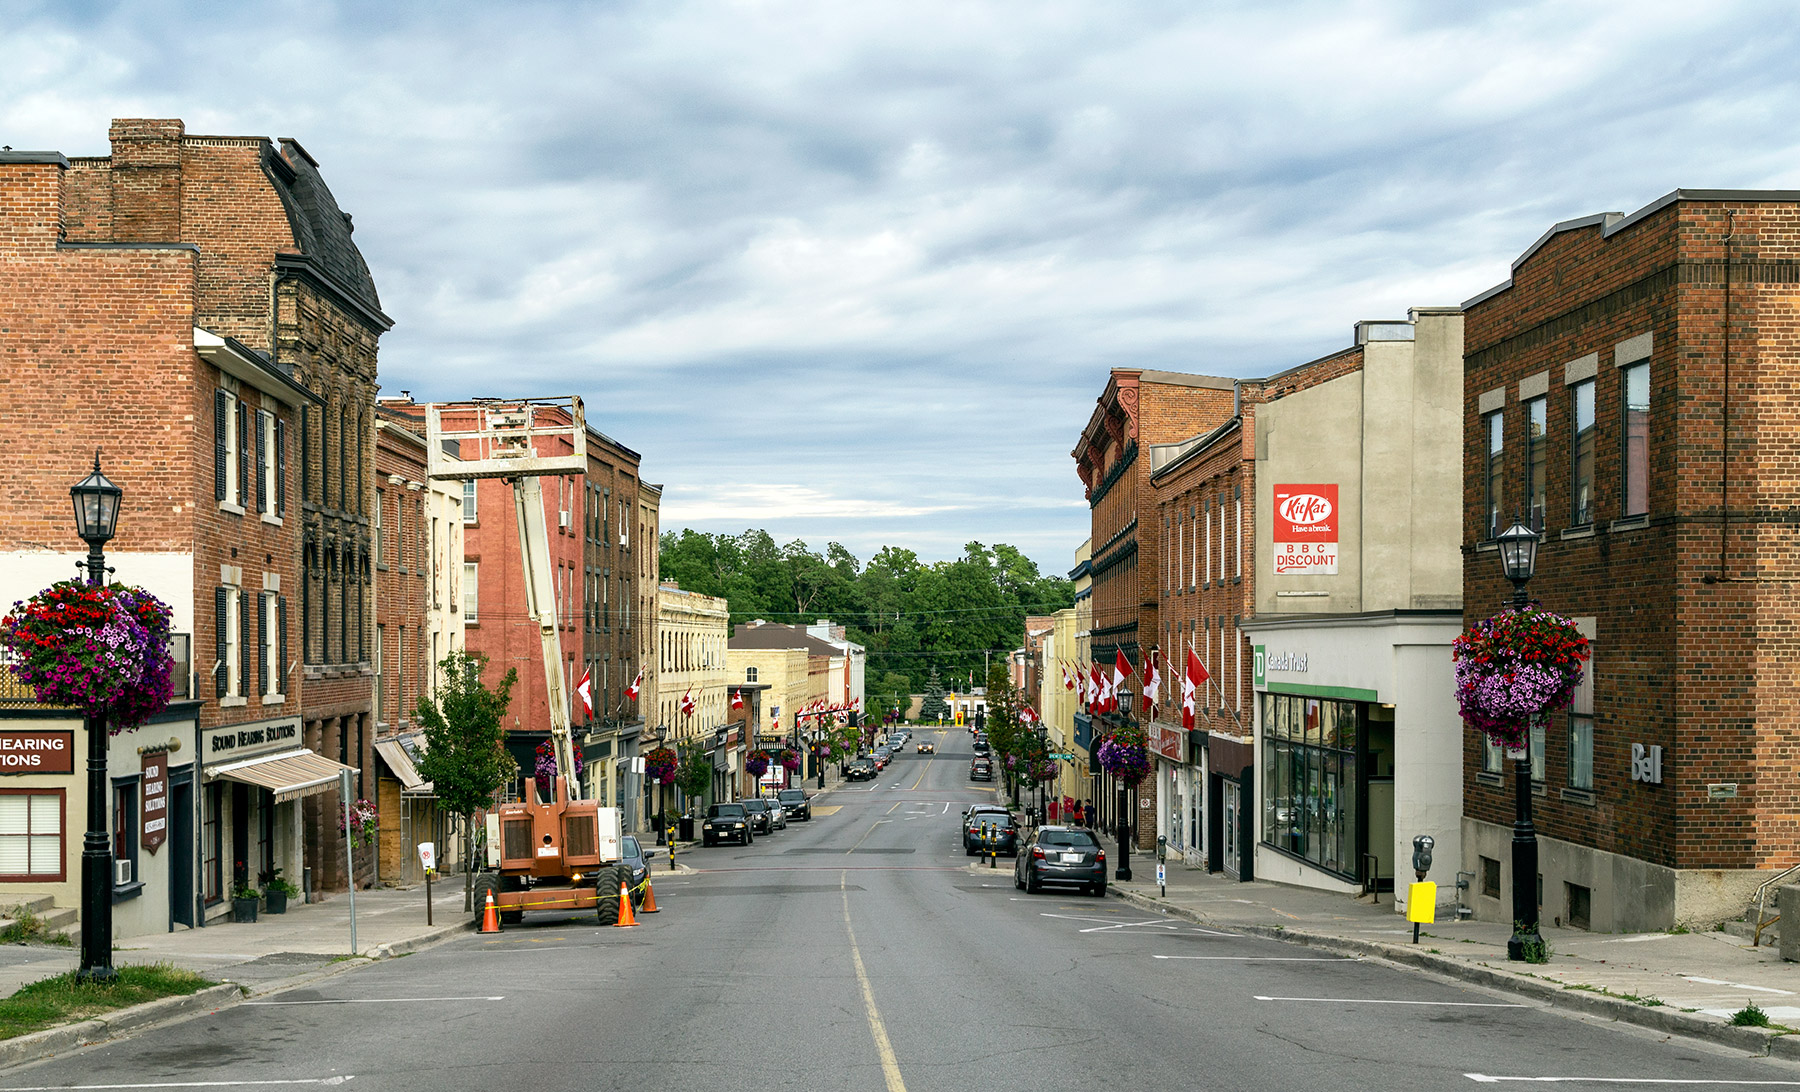 20160730. Port Hope's Walton Street is acclaimed as the best pre